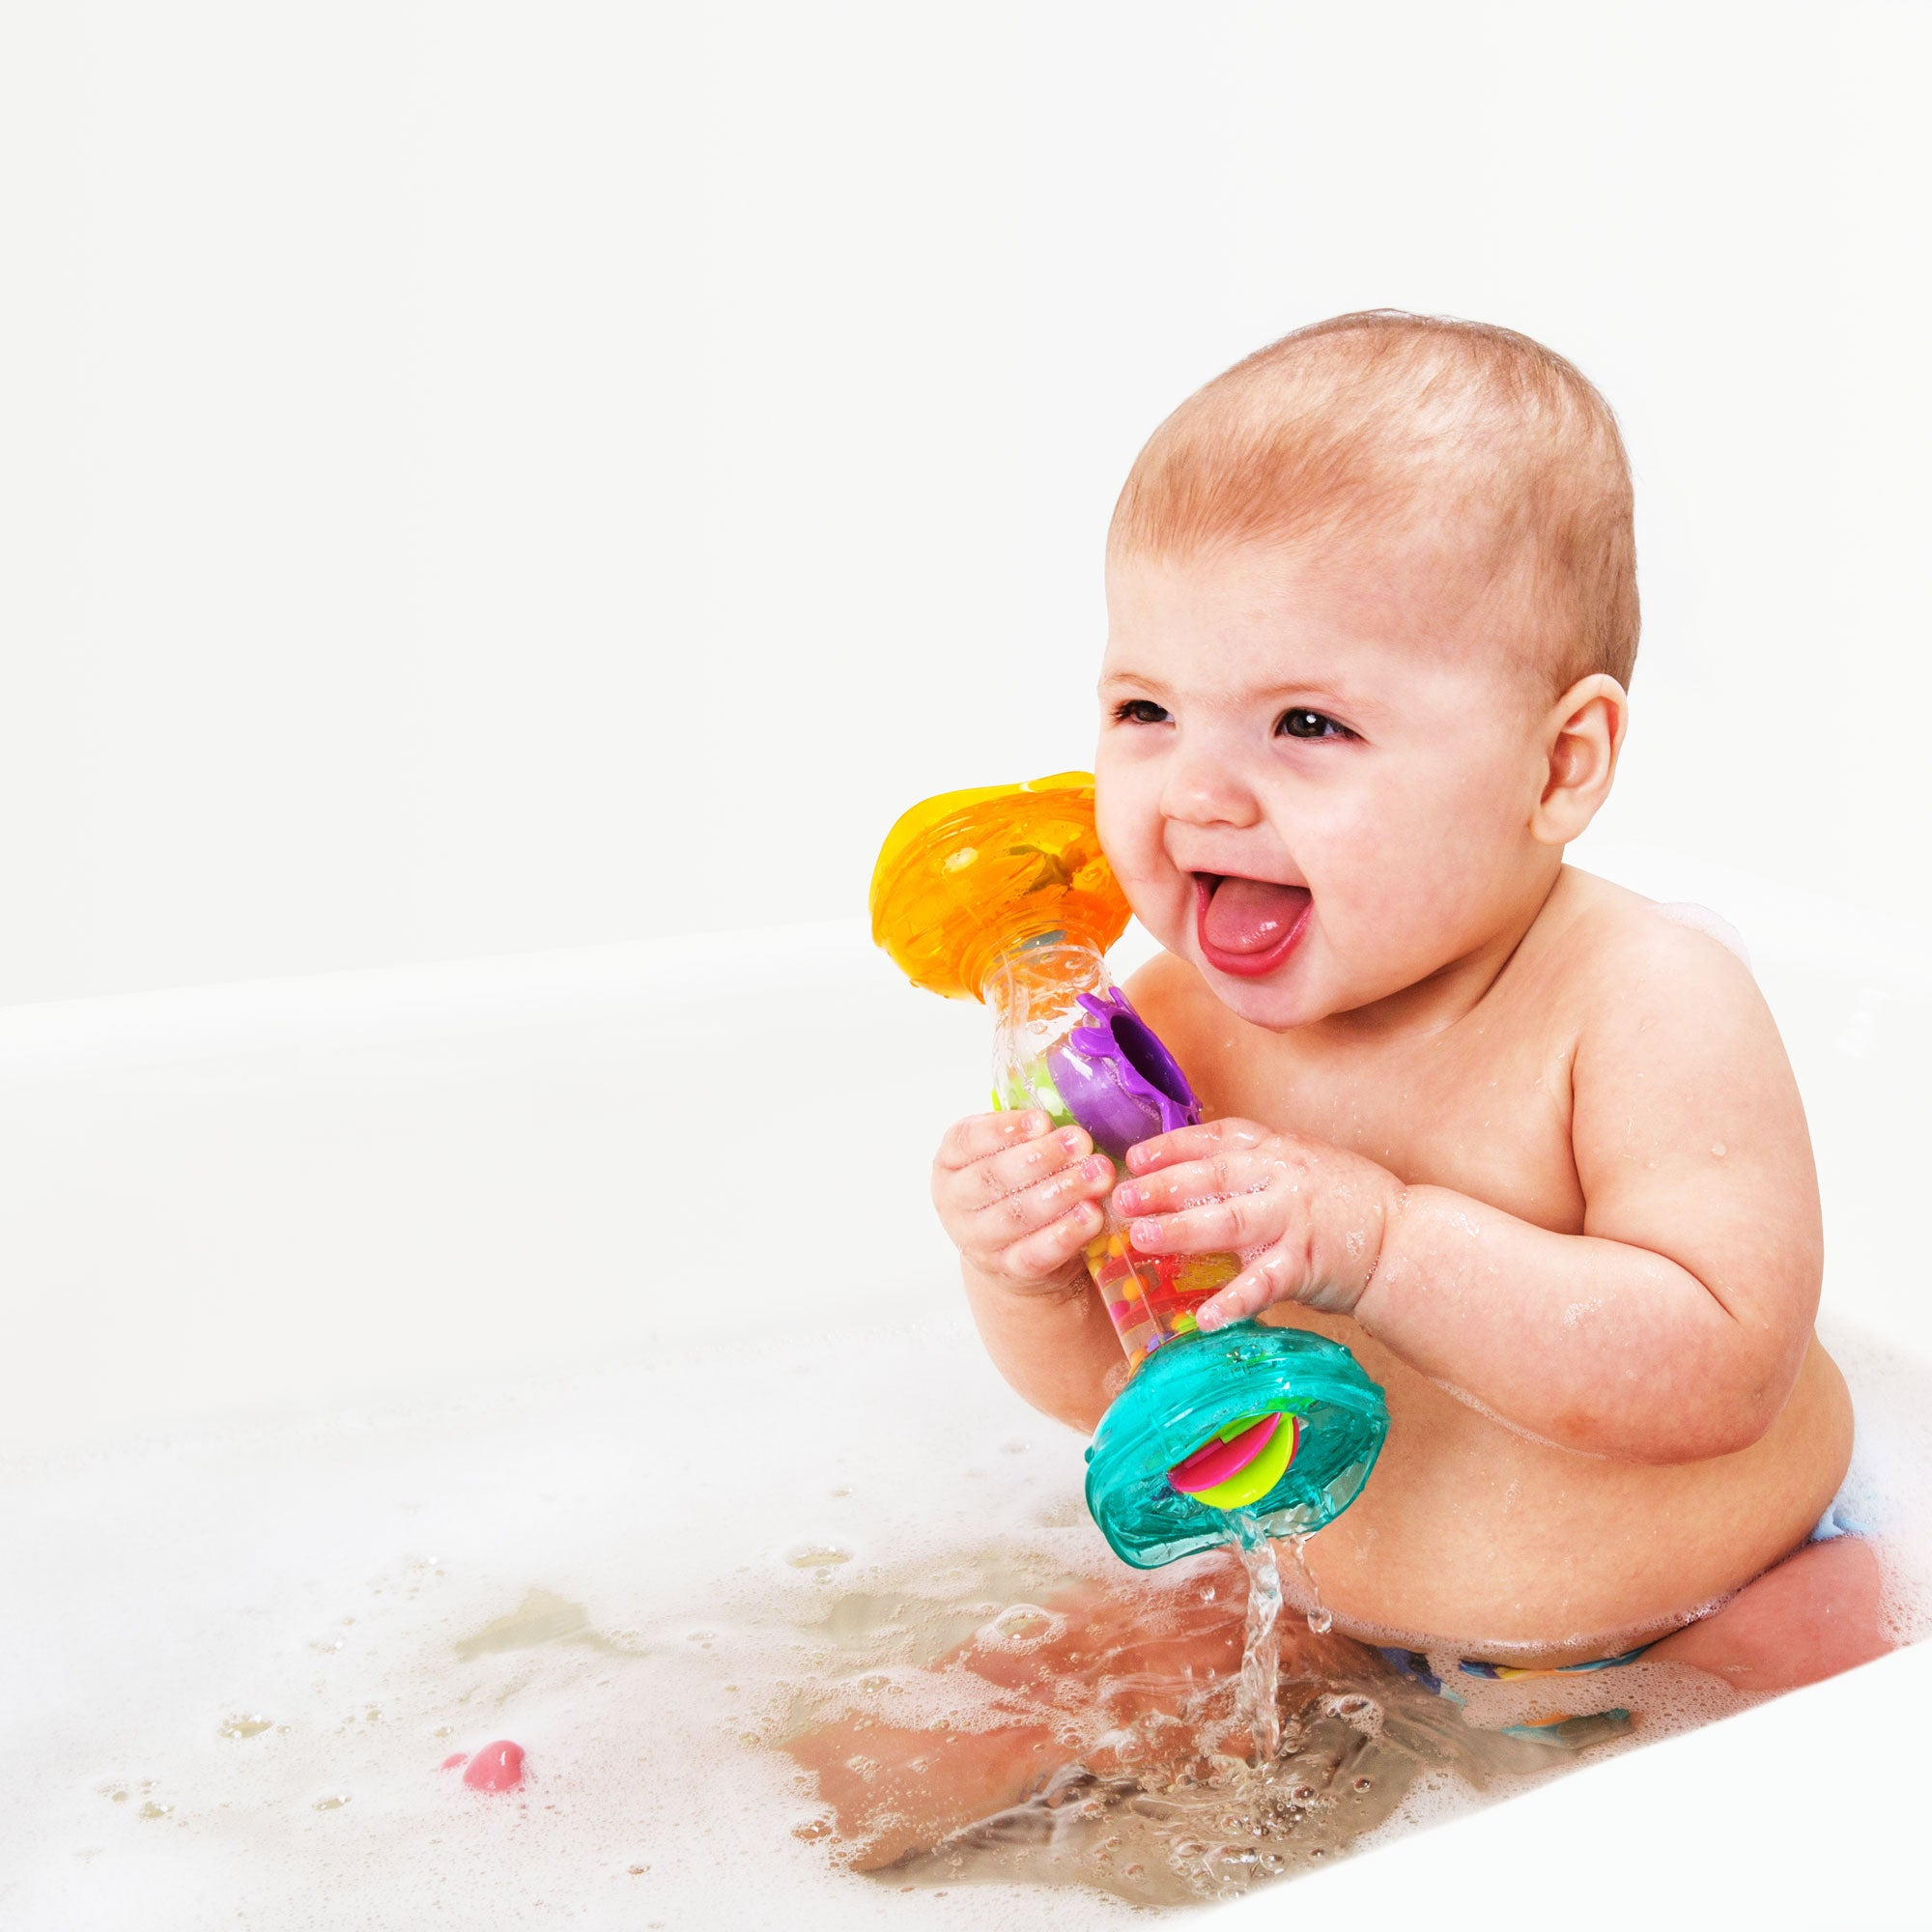 A baby boy playing Playgro rainmaker toy in the bath tub